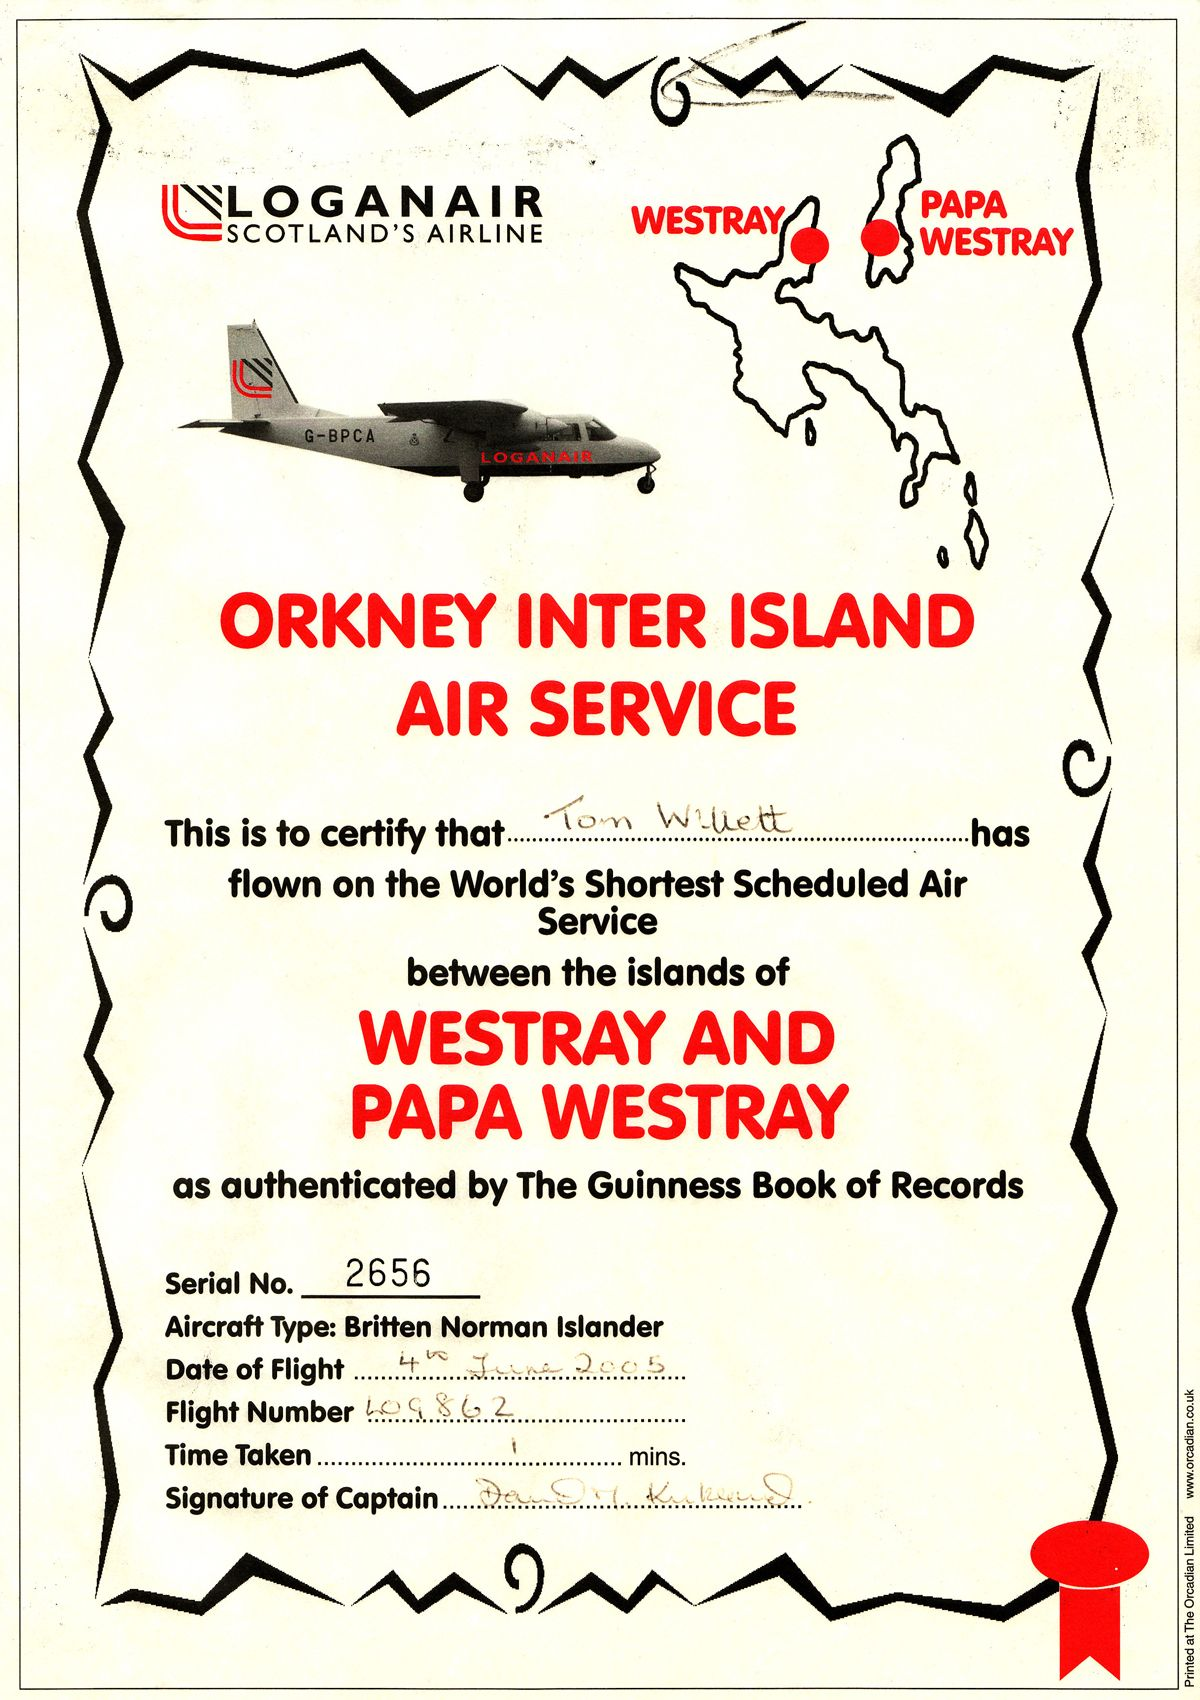 The world's shortest scheduled airline flight - Westray to